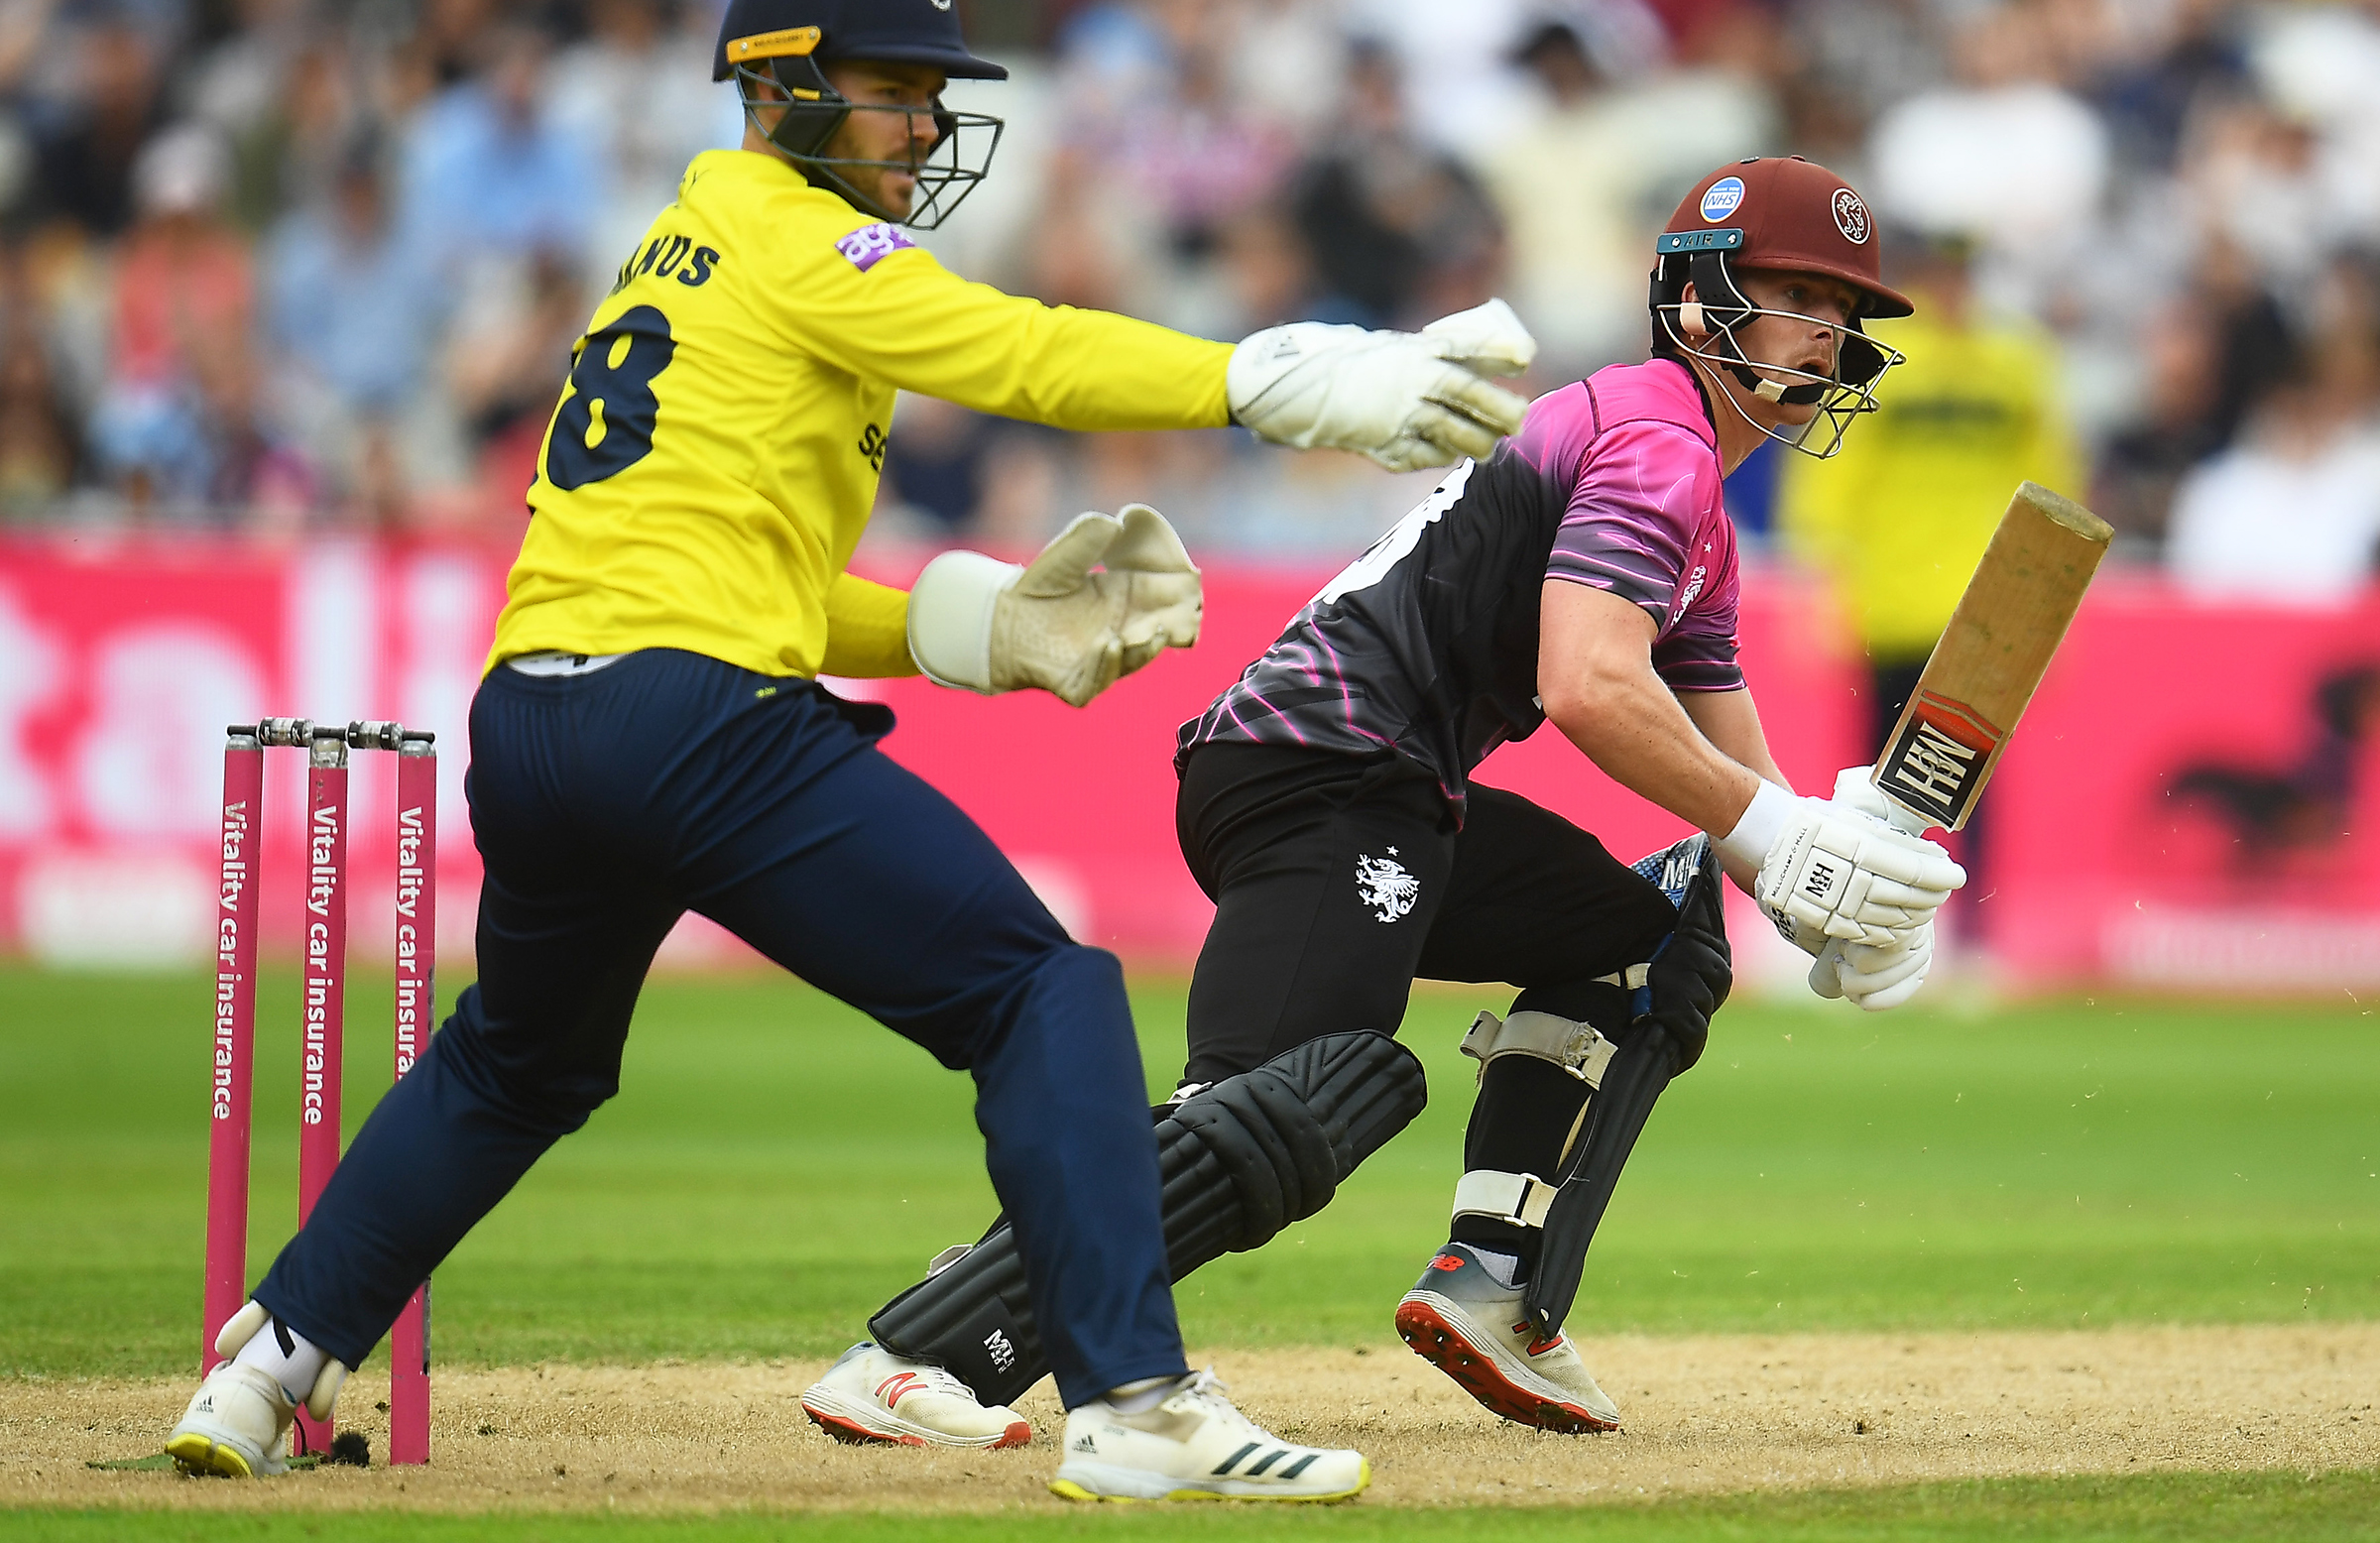 Abell in action for Somerset's T20 team // Getty